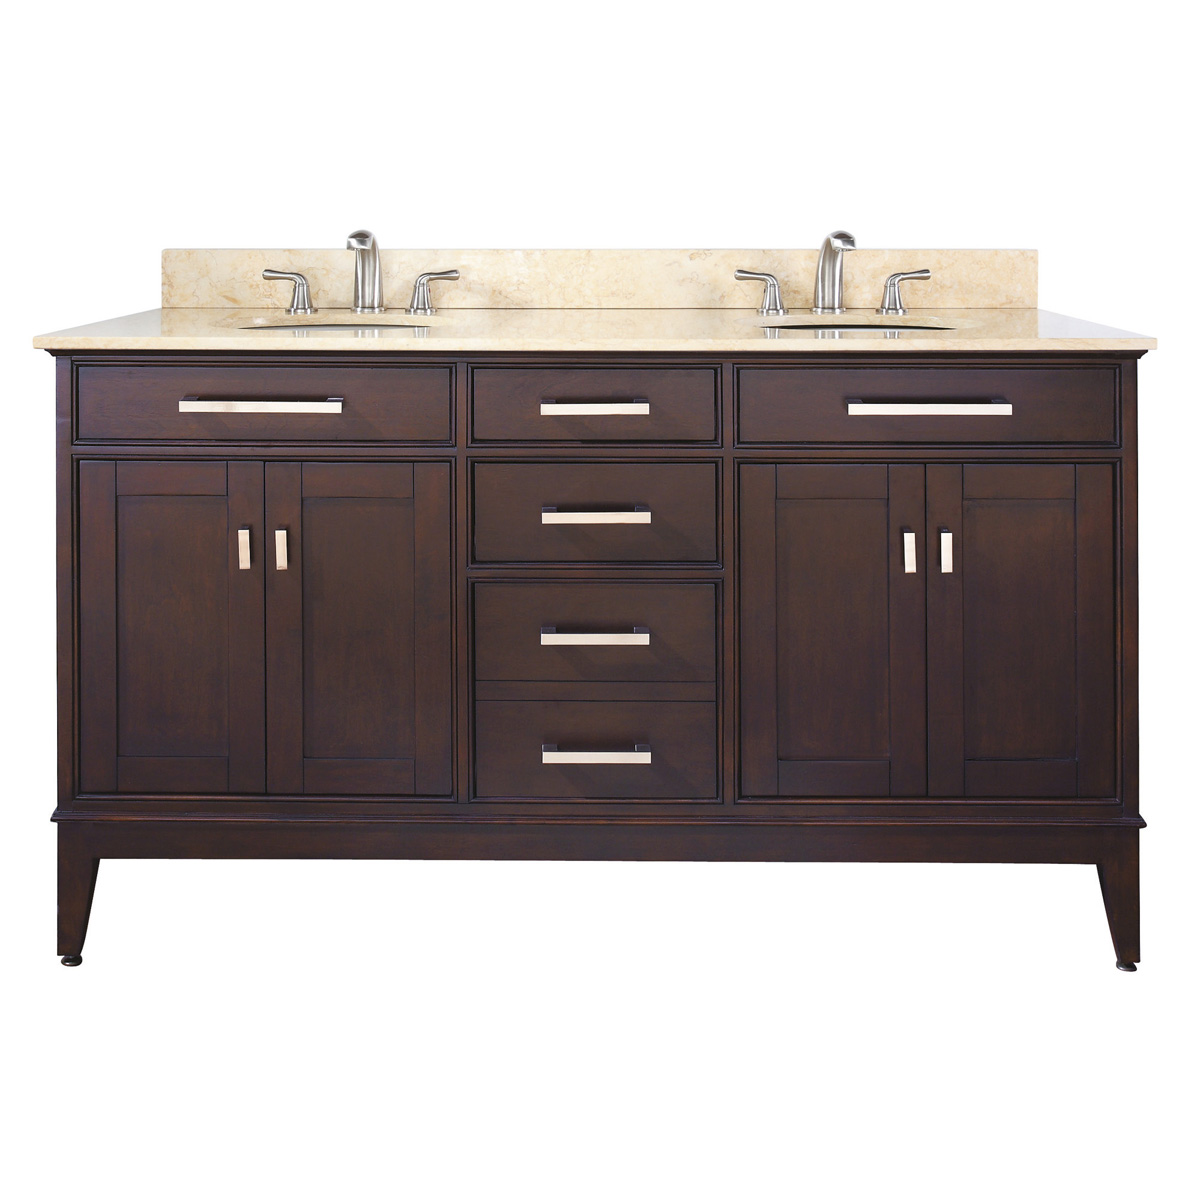 "60"" Marciana Double Vanity in Light Espresso"